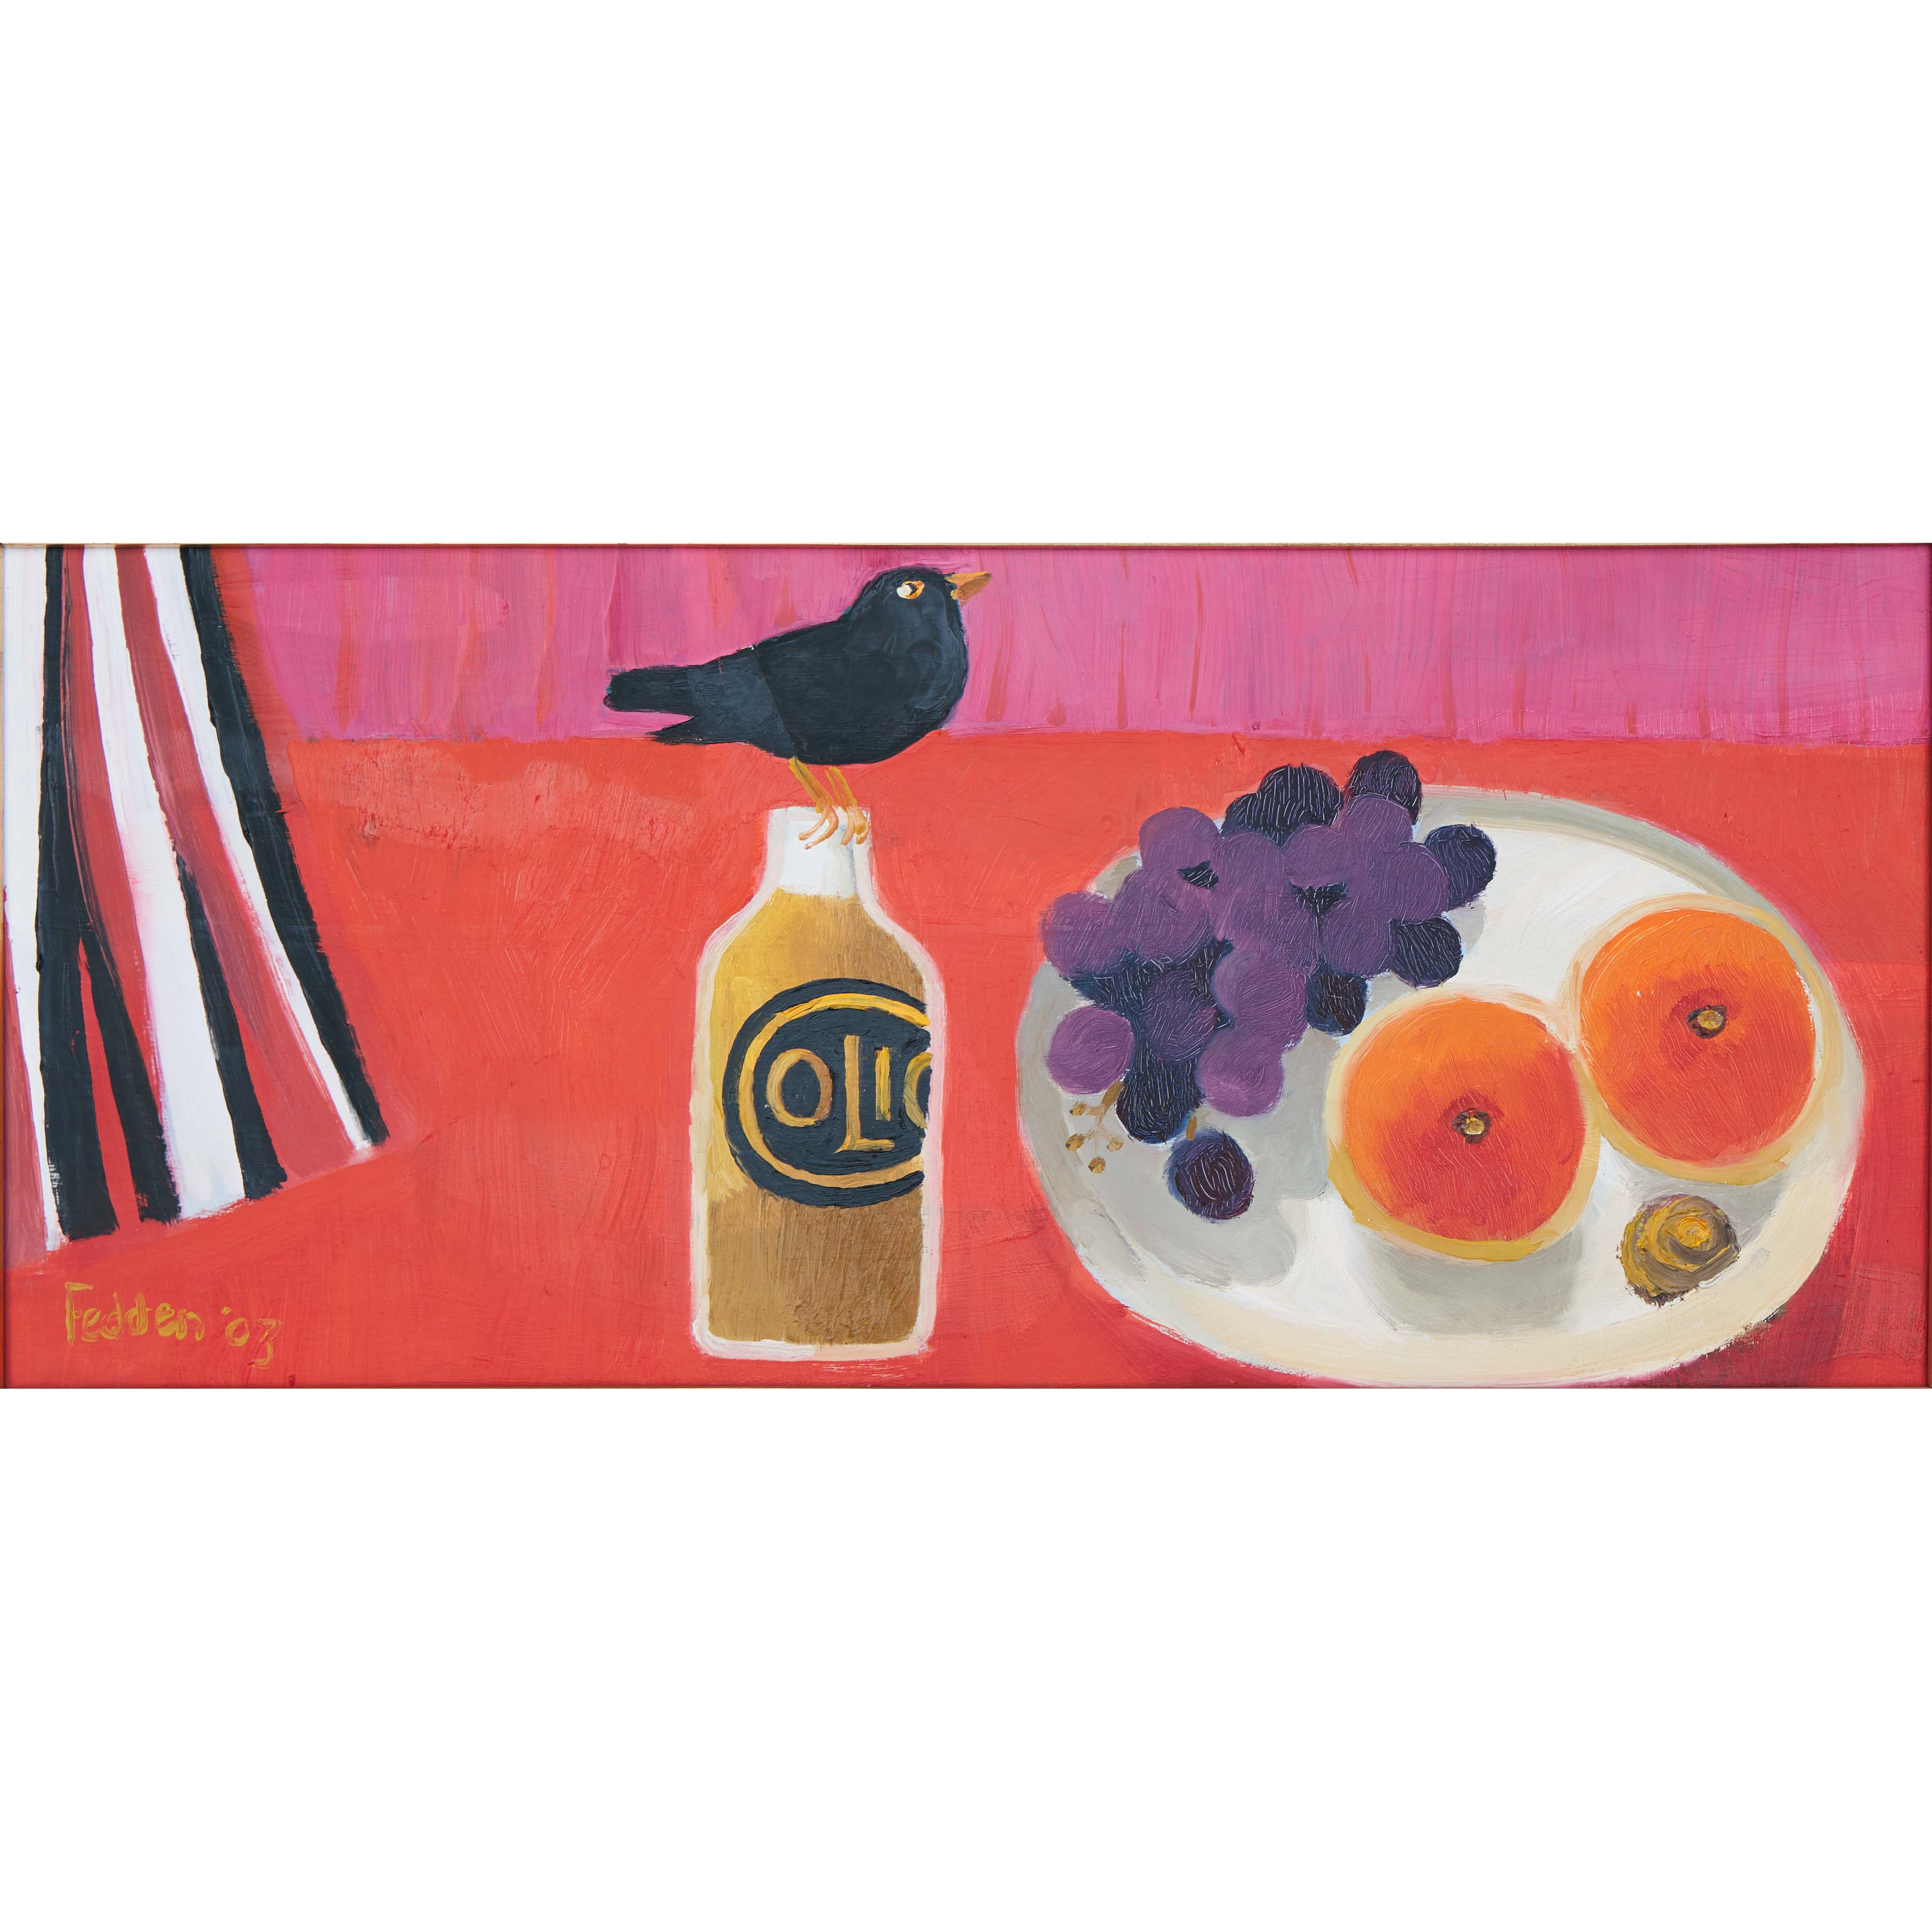 MARY FEDDEN. BLACKBIRD. 2003. SOLD